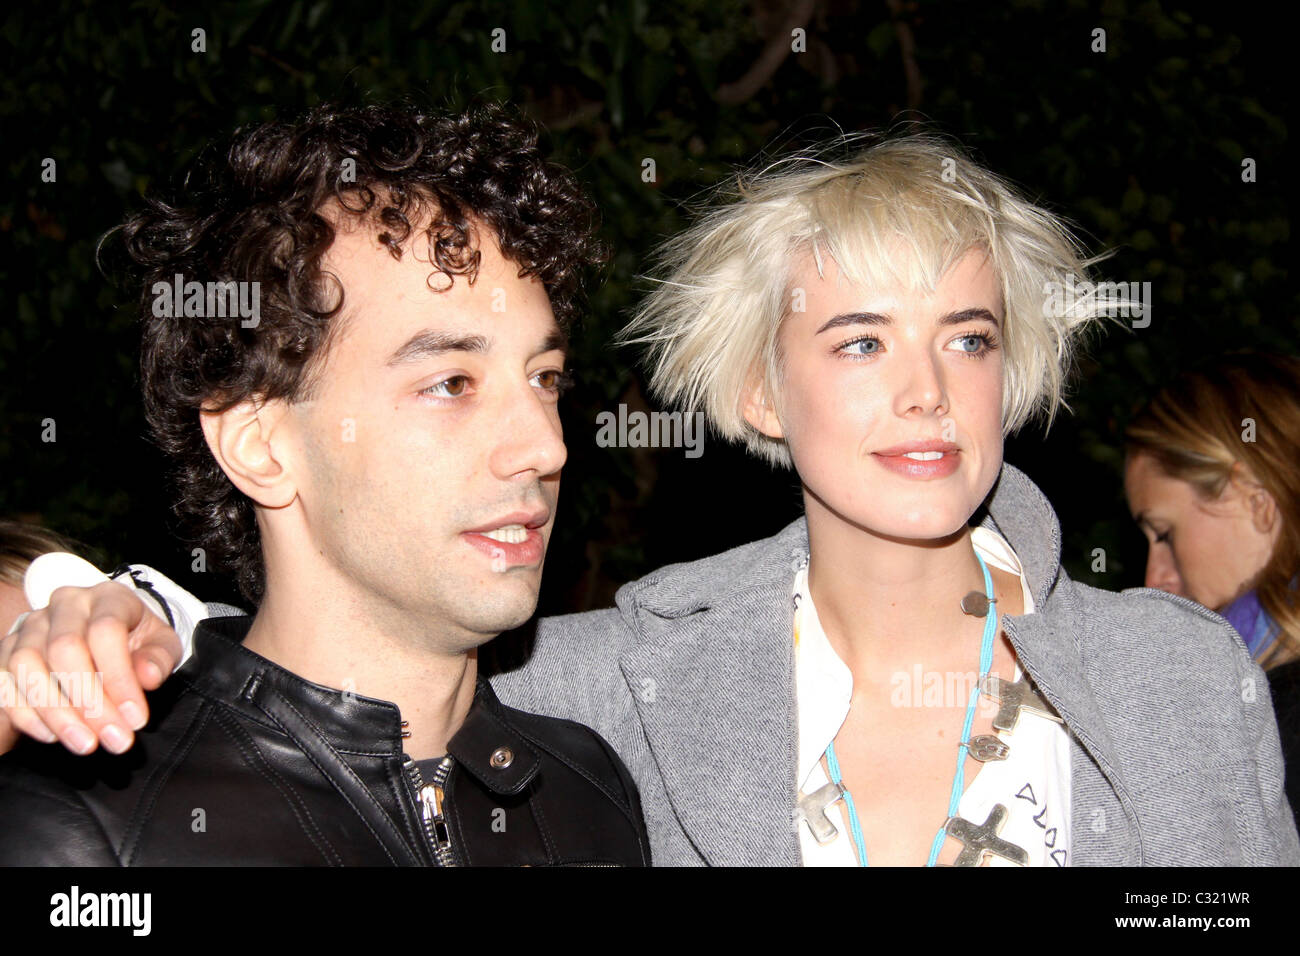 Albert Hammond Jr And Agyness Deyn Opening Party For Mobile Art Chanel Contemporary Art Container In Central Park Arrivals Stock Photo Alamy